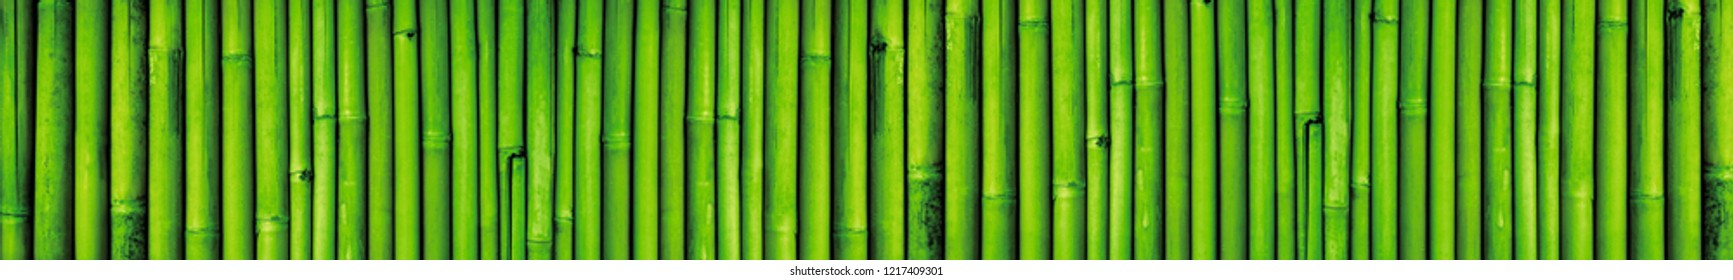 Solid background of green bamboo.